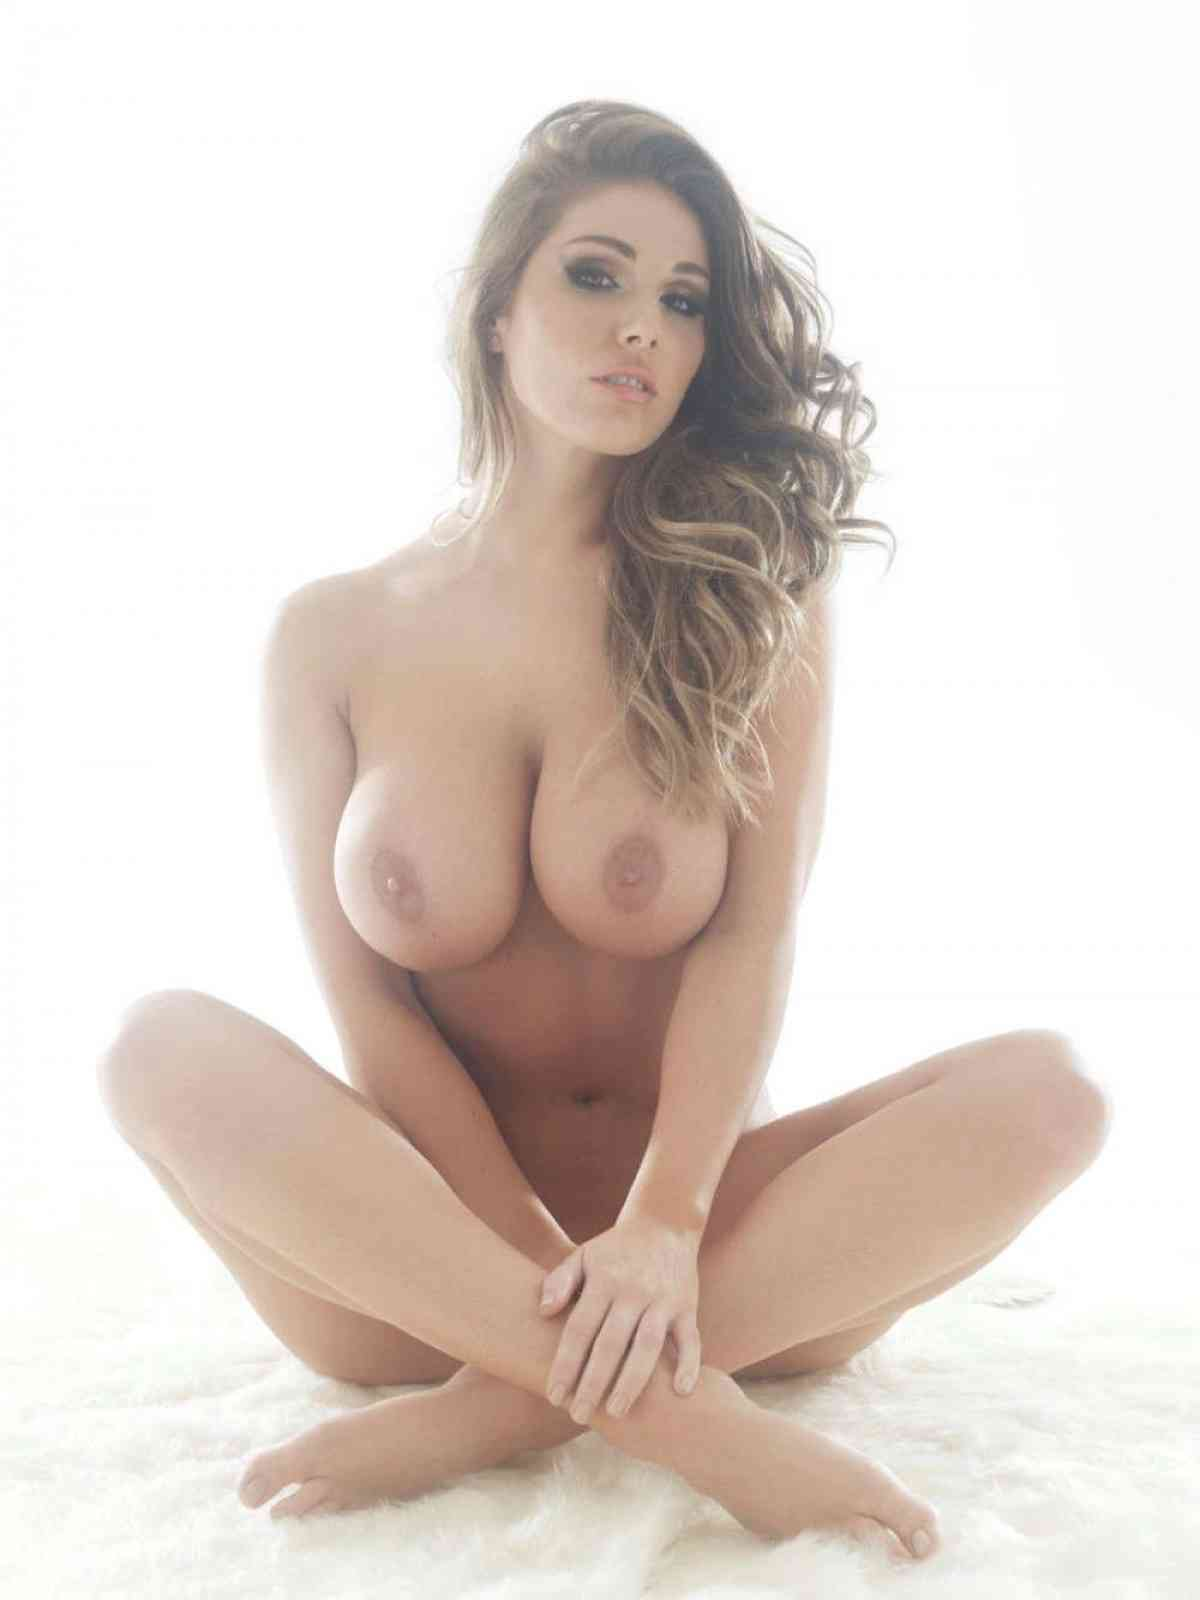 Lucy pinder boobs topless pictures